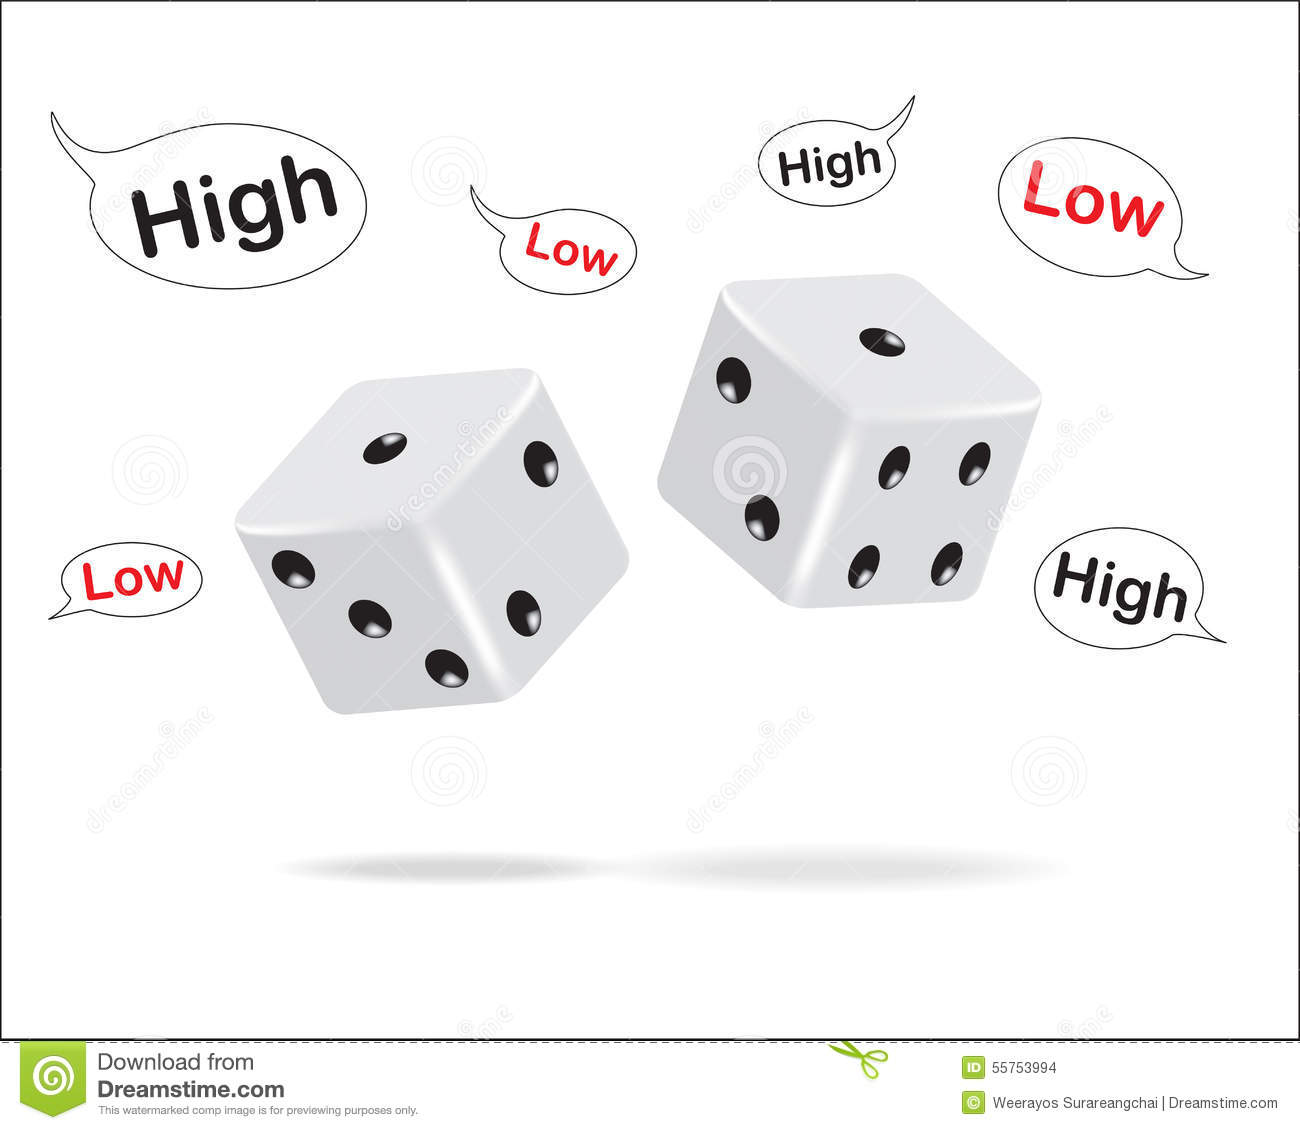 how to play high low dice